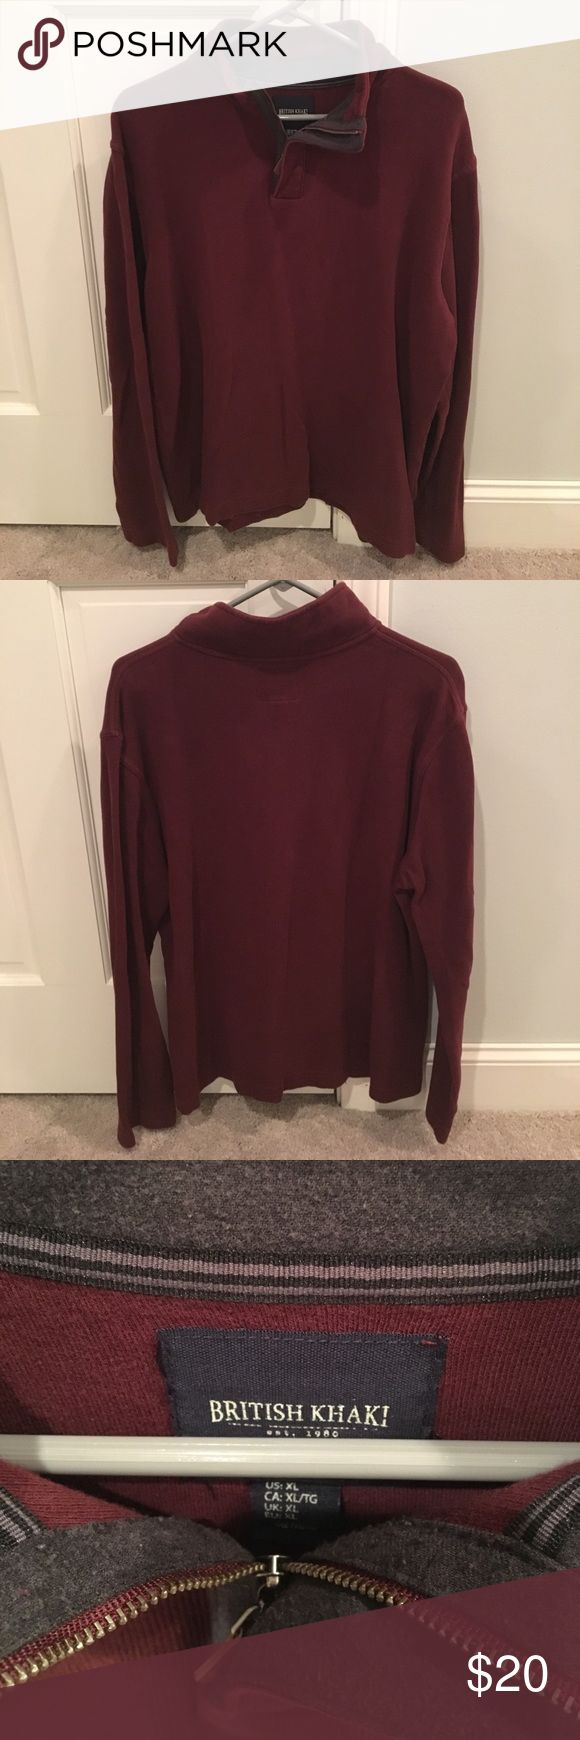 British Khaki 1/4 zip long sleeve pullover XL British Khaki 1/4 zip burgundy 100% cotton pullover sweater.  XL EUC no rips no stains. Gray accent color on collar and leather pull on zipper. British Khaki Sweaters Zip Up